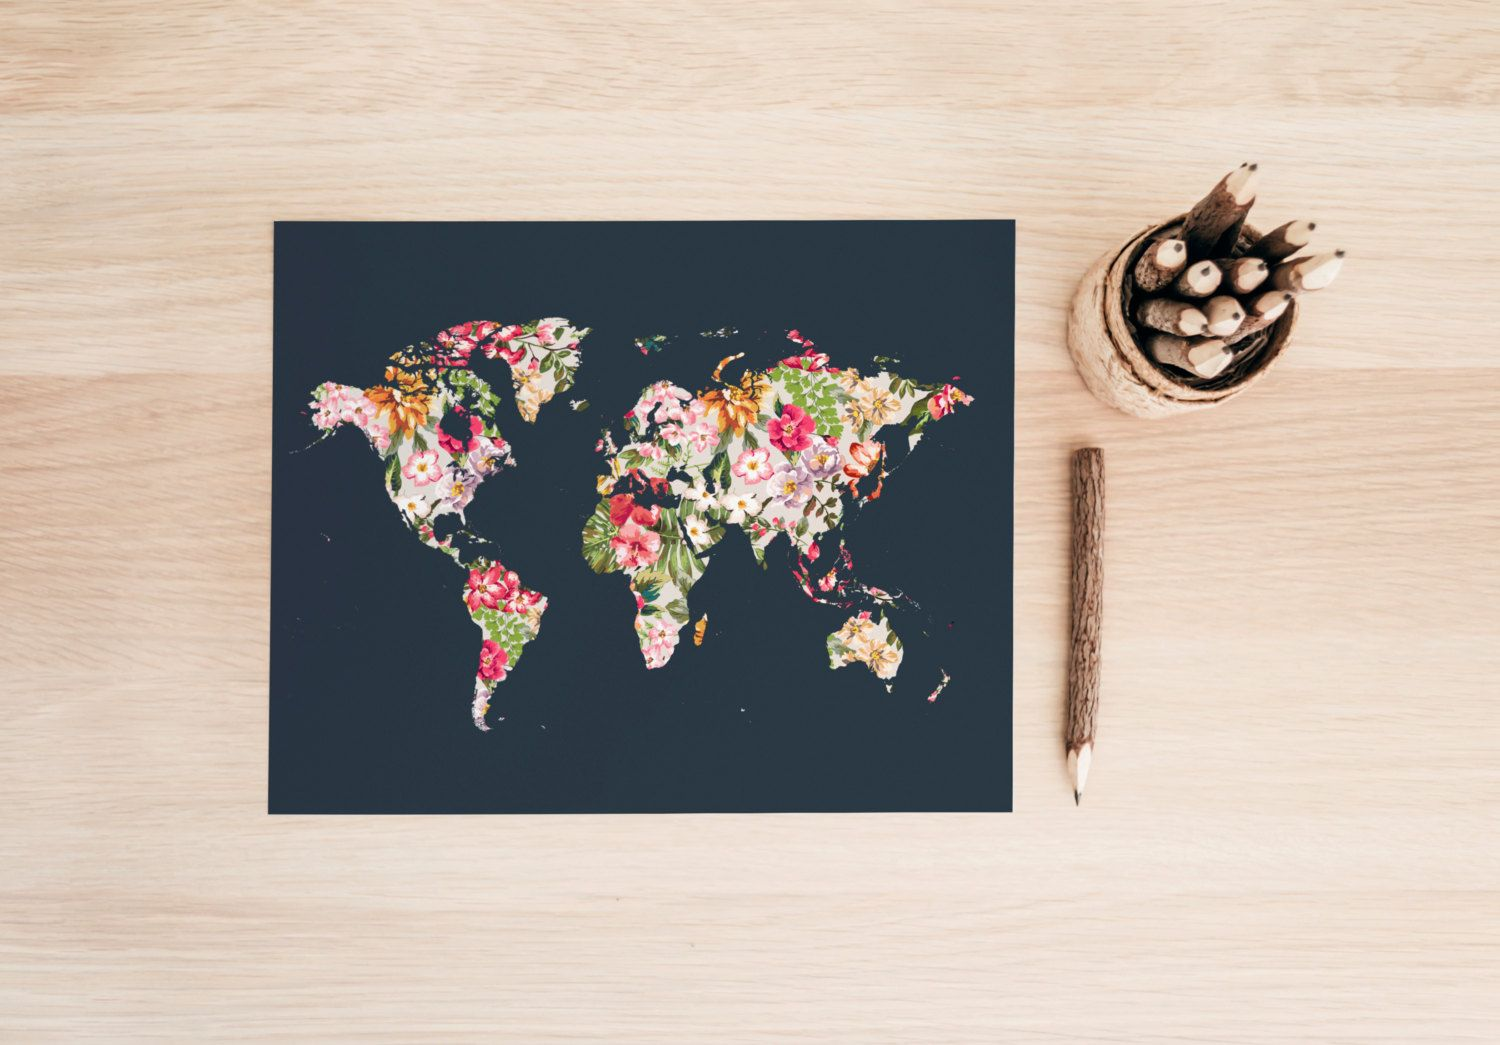 Printable art typography art print floral world map art print world printable art typography art print floral world map art print world map print travel art print travel wall art floral wall art tropical map 150 usd by gumiabroncs Gallery